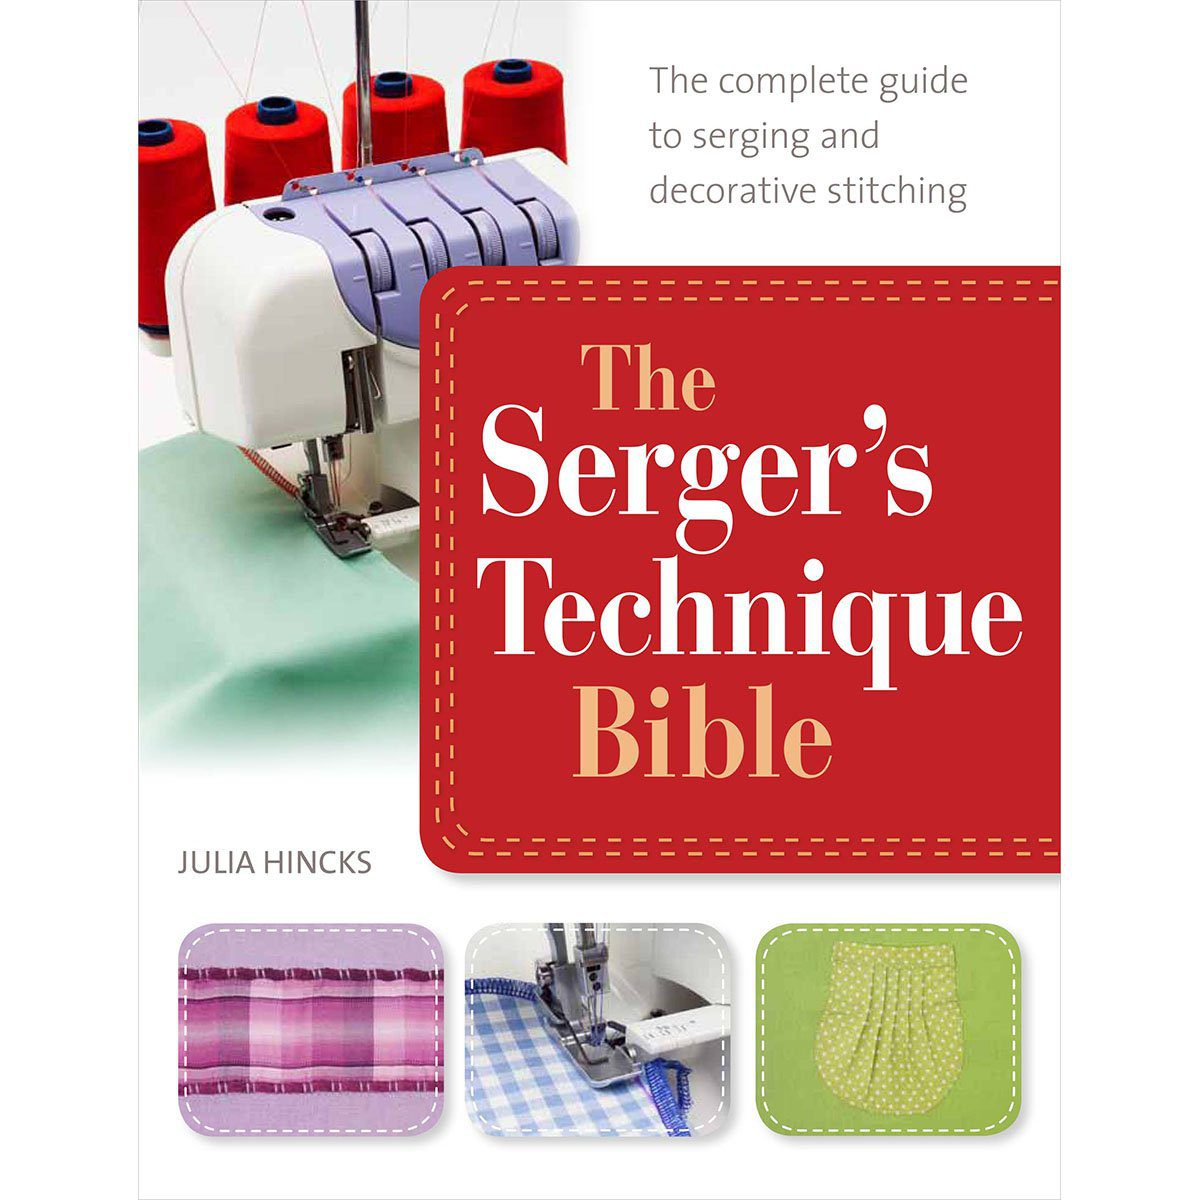 Serger's Technique Bible